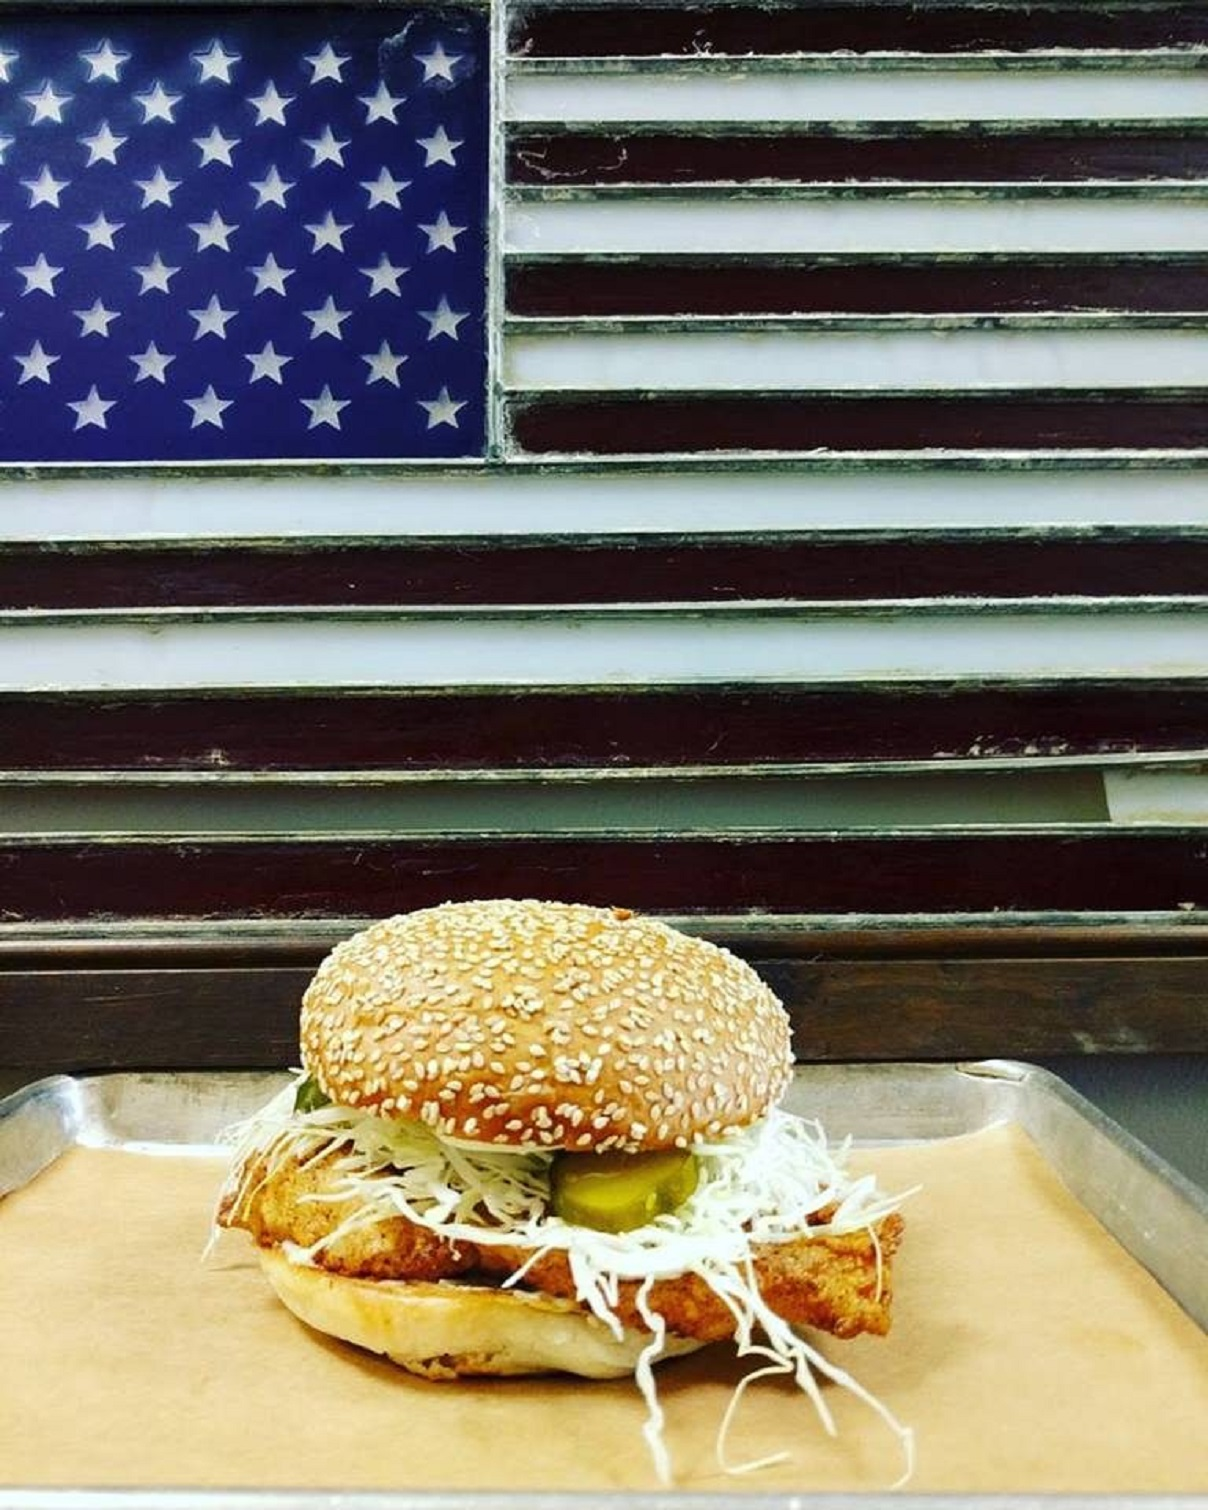 TOP 10 BURGERS IN THE USA